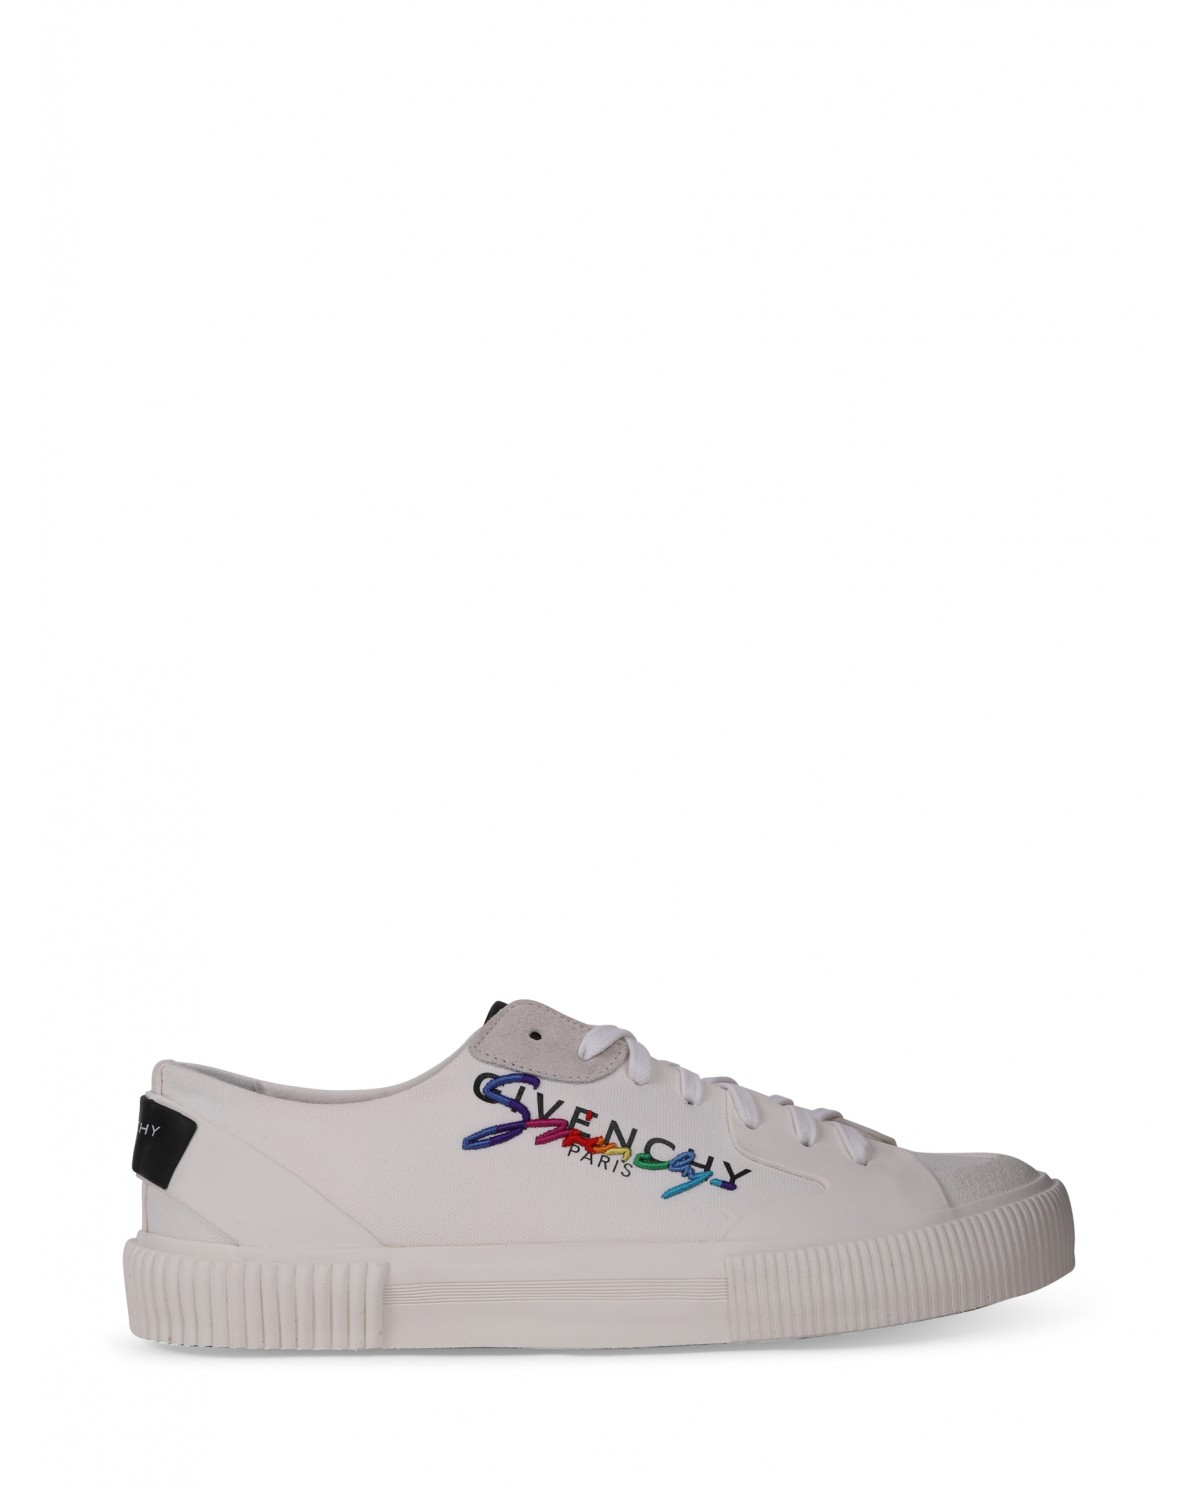 Givenchy white logo sneakers